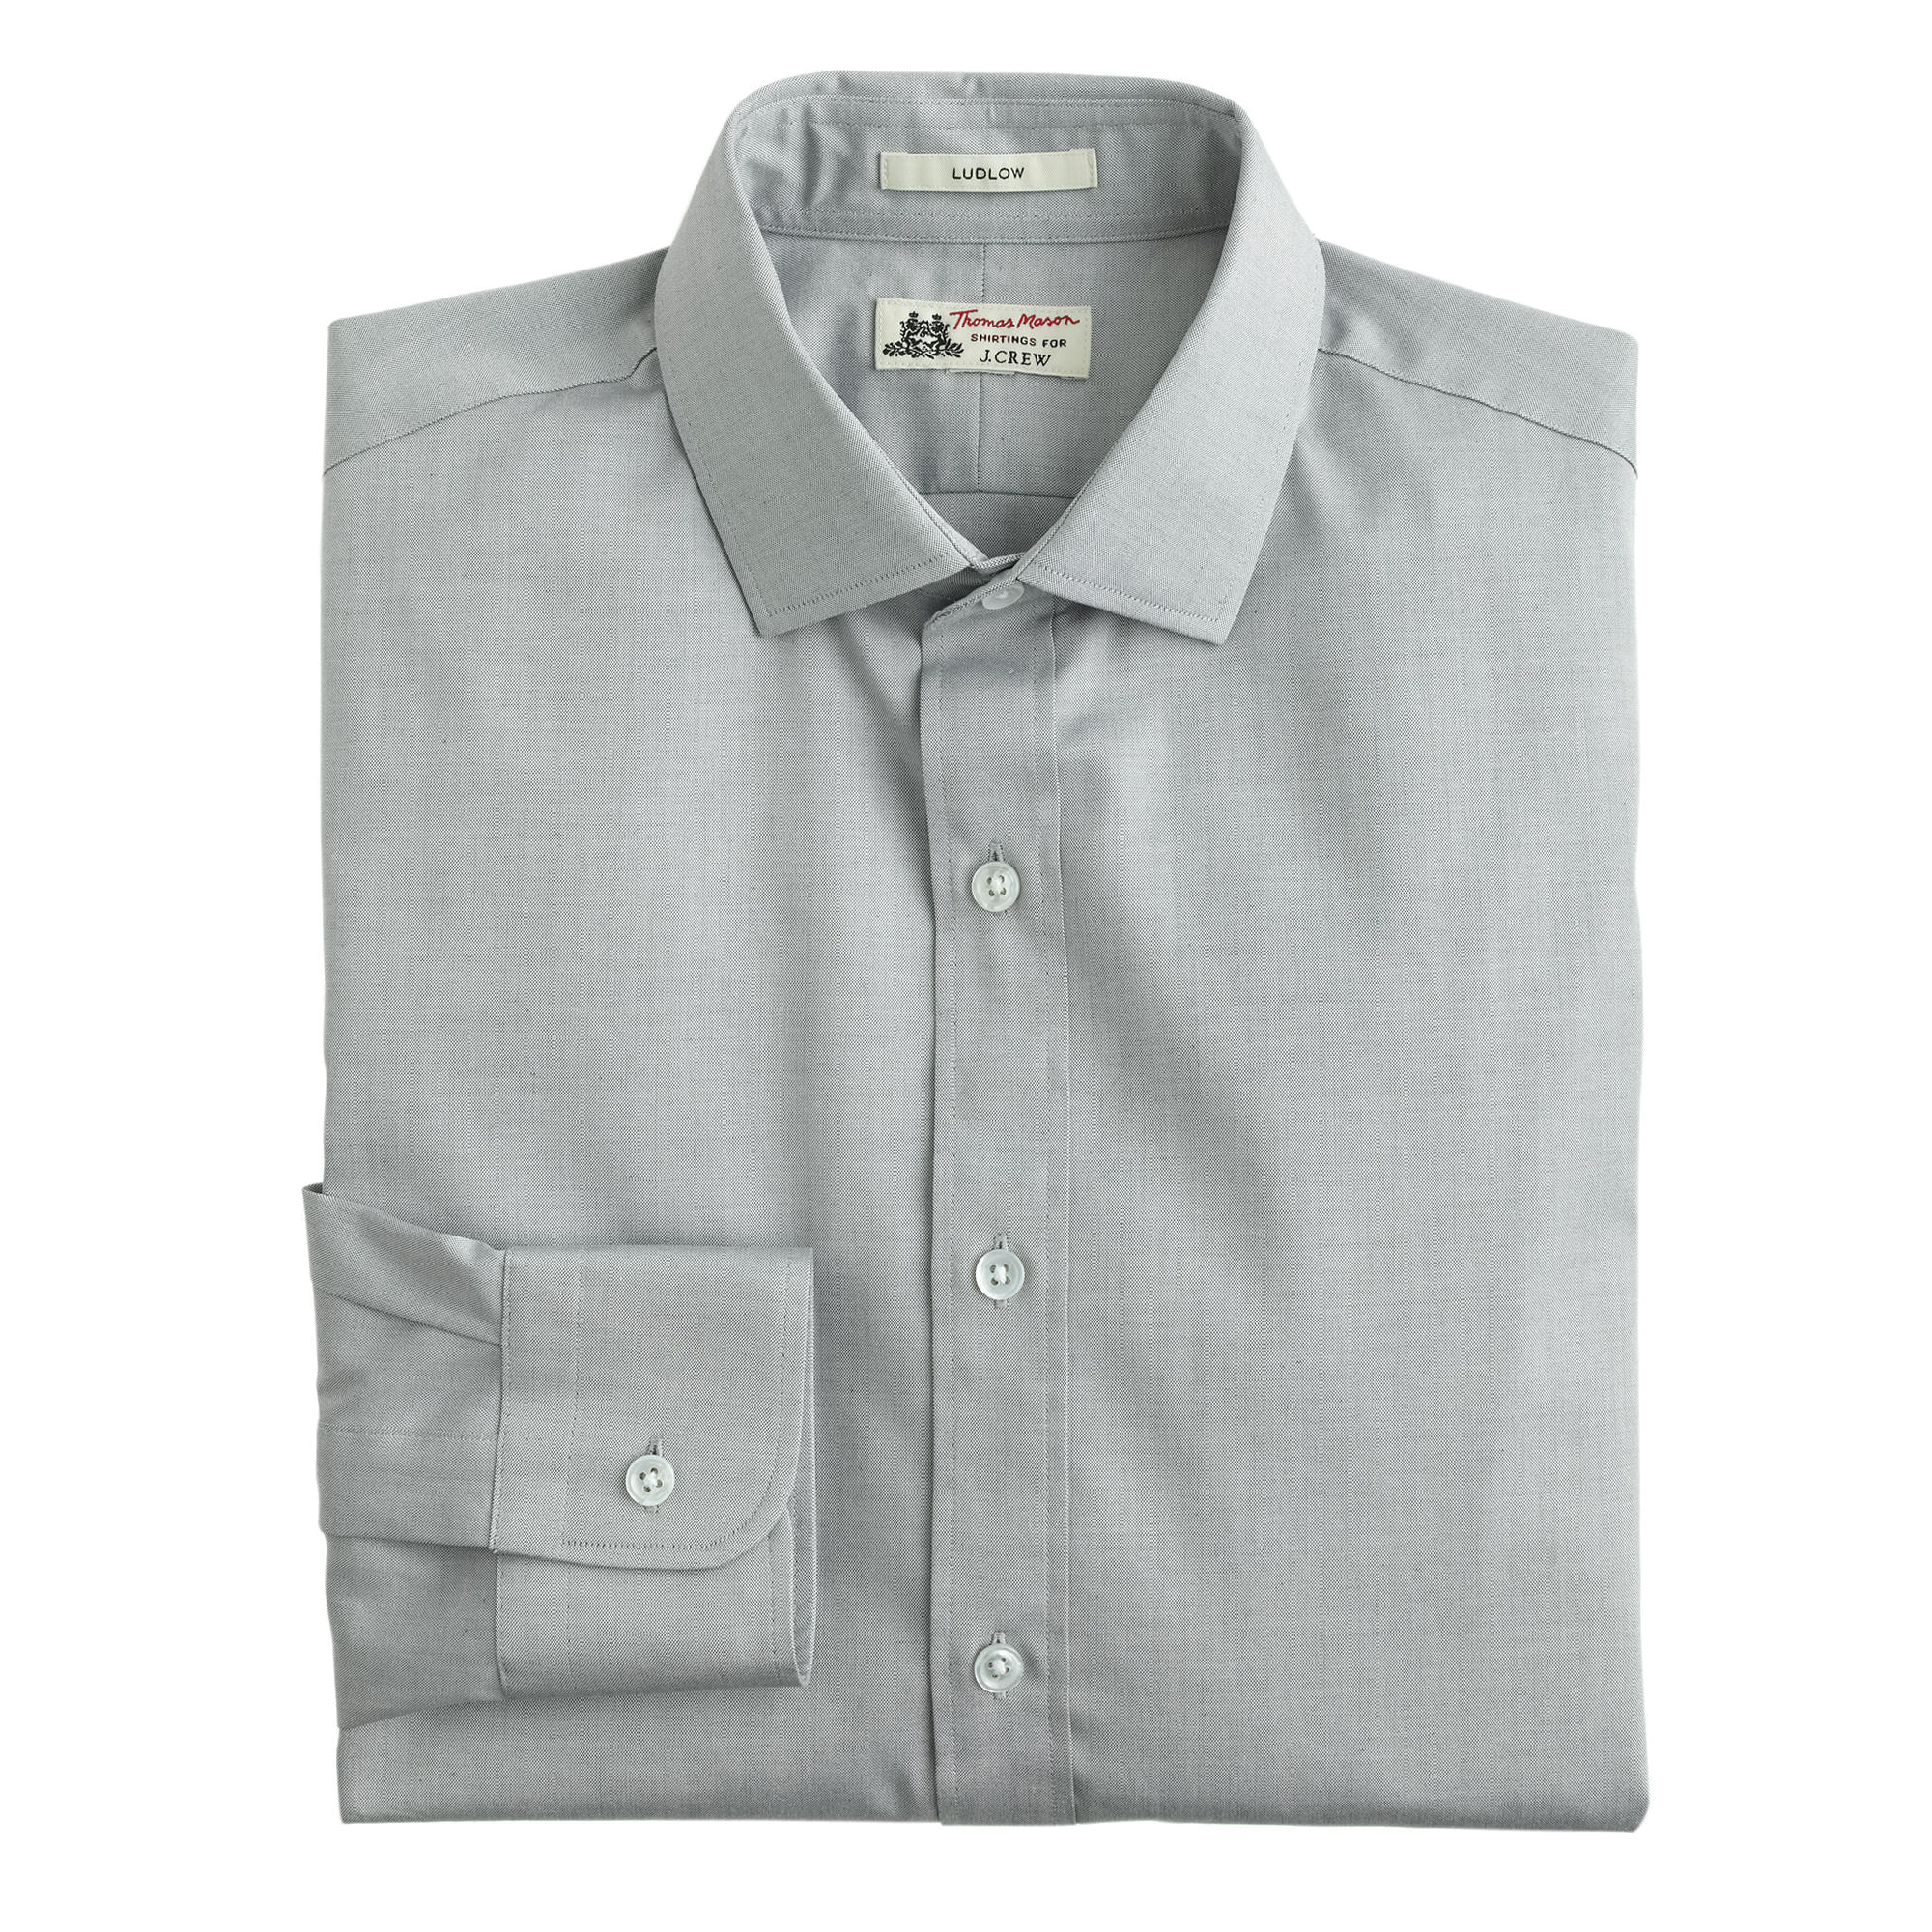 Thomas Mason Ludlow Shirt In Solid In Gray For Men